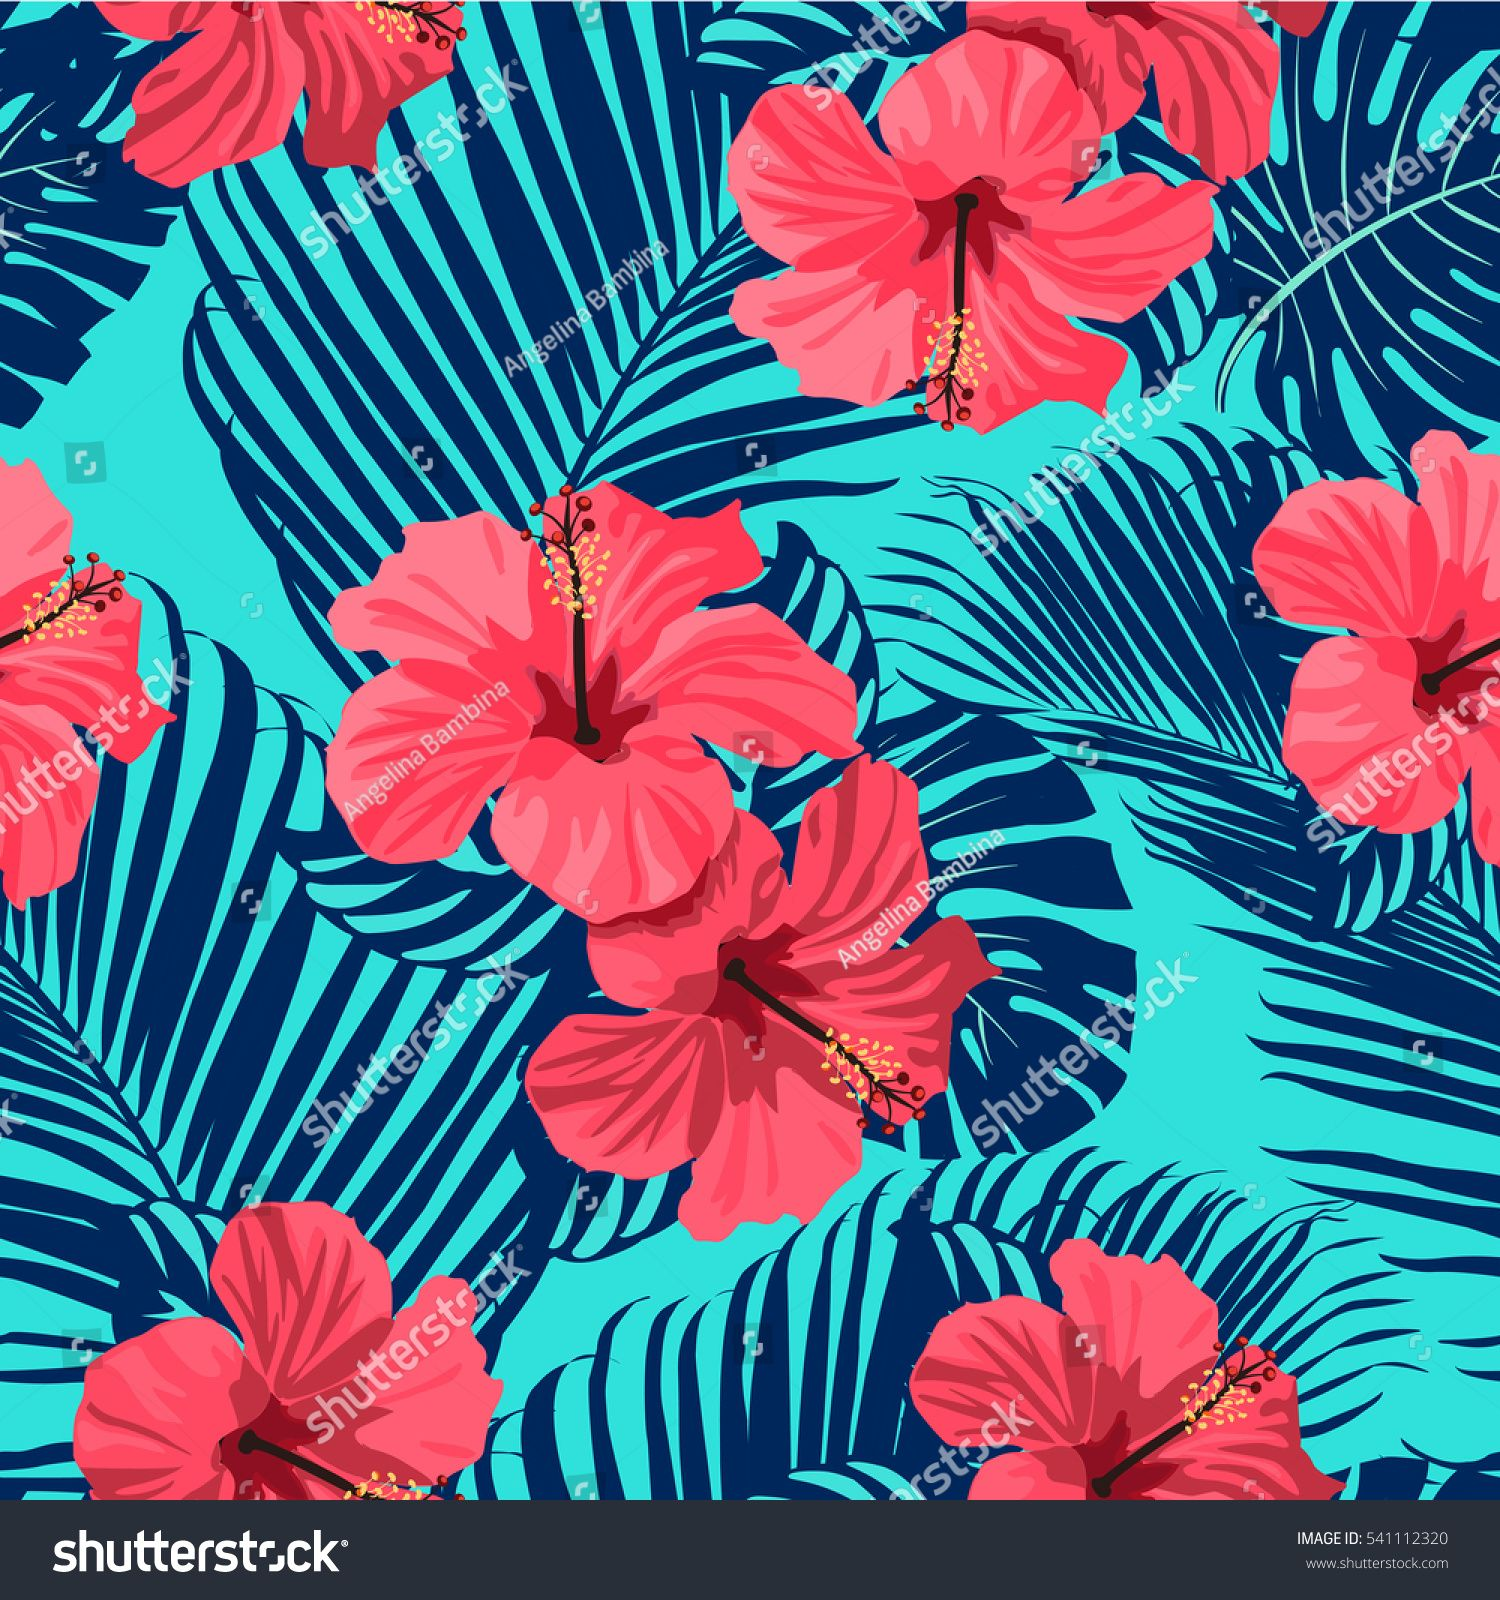 Tropical flowers and palm leaves on background. Seamless pattern. #tropicalpattern